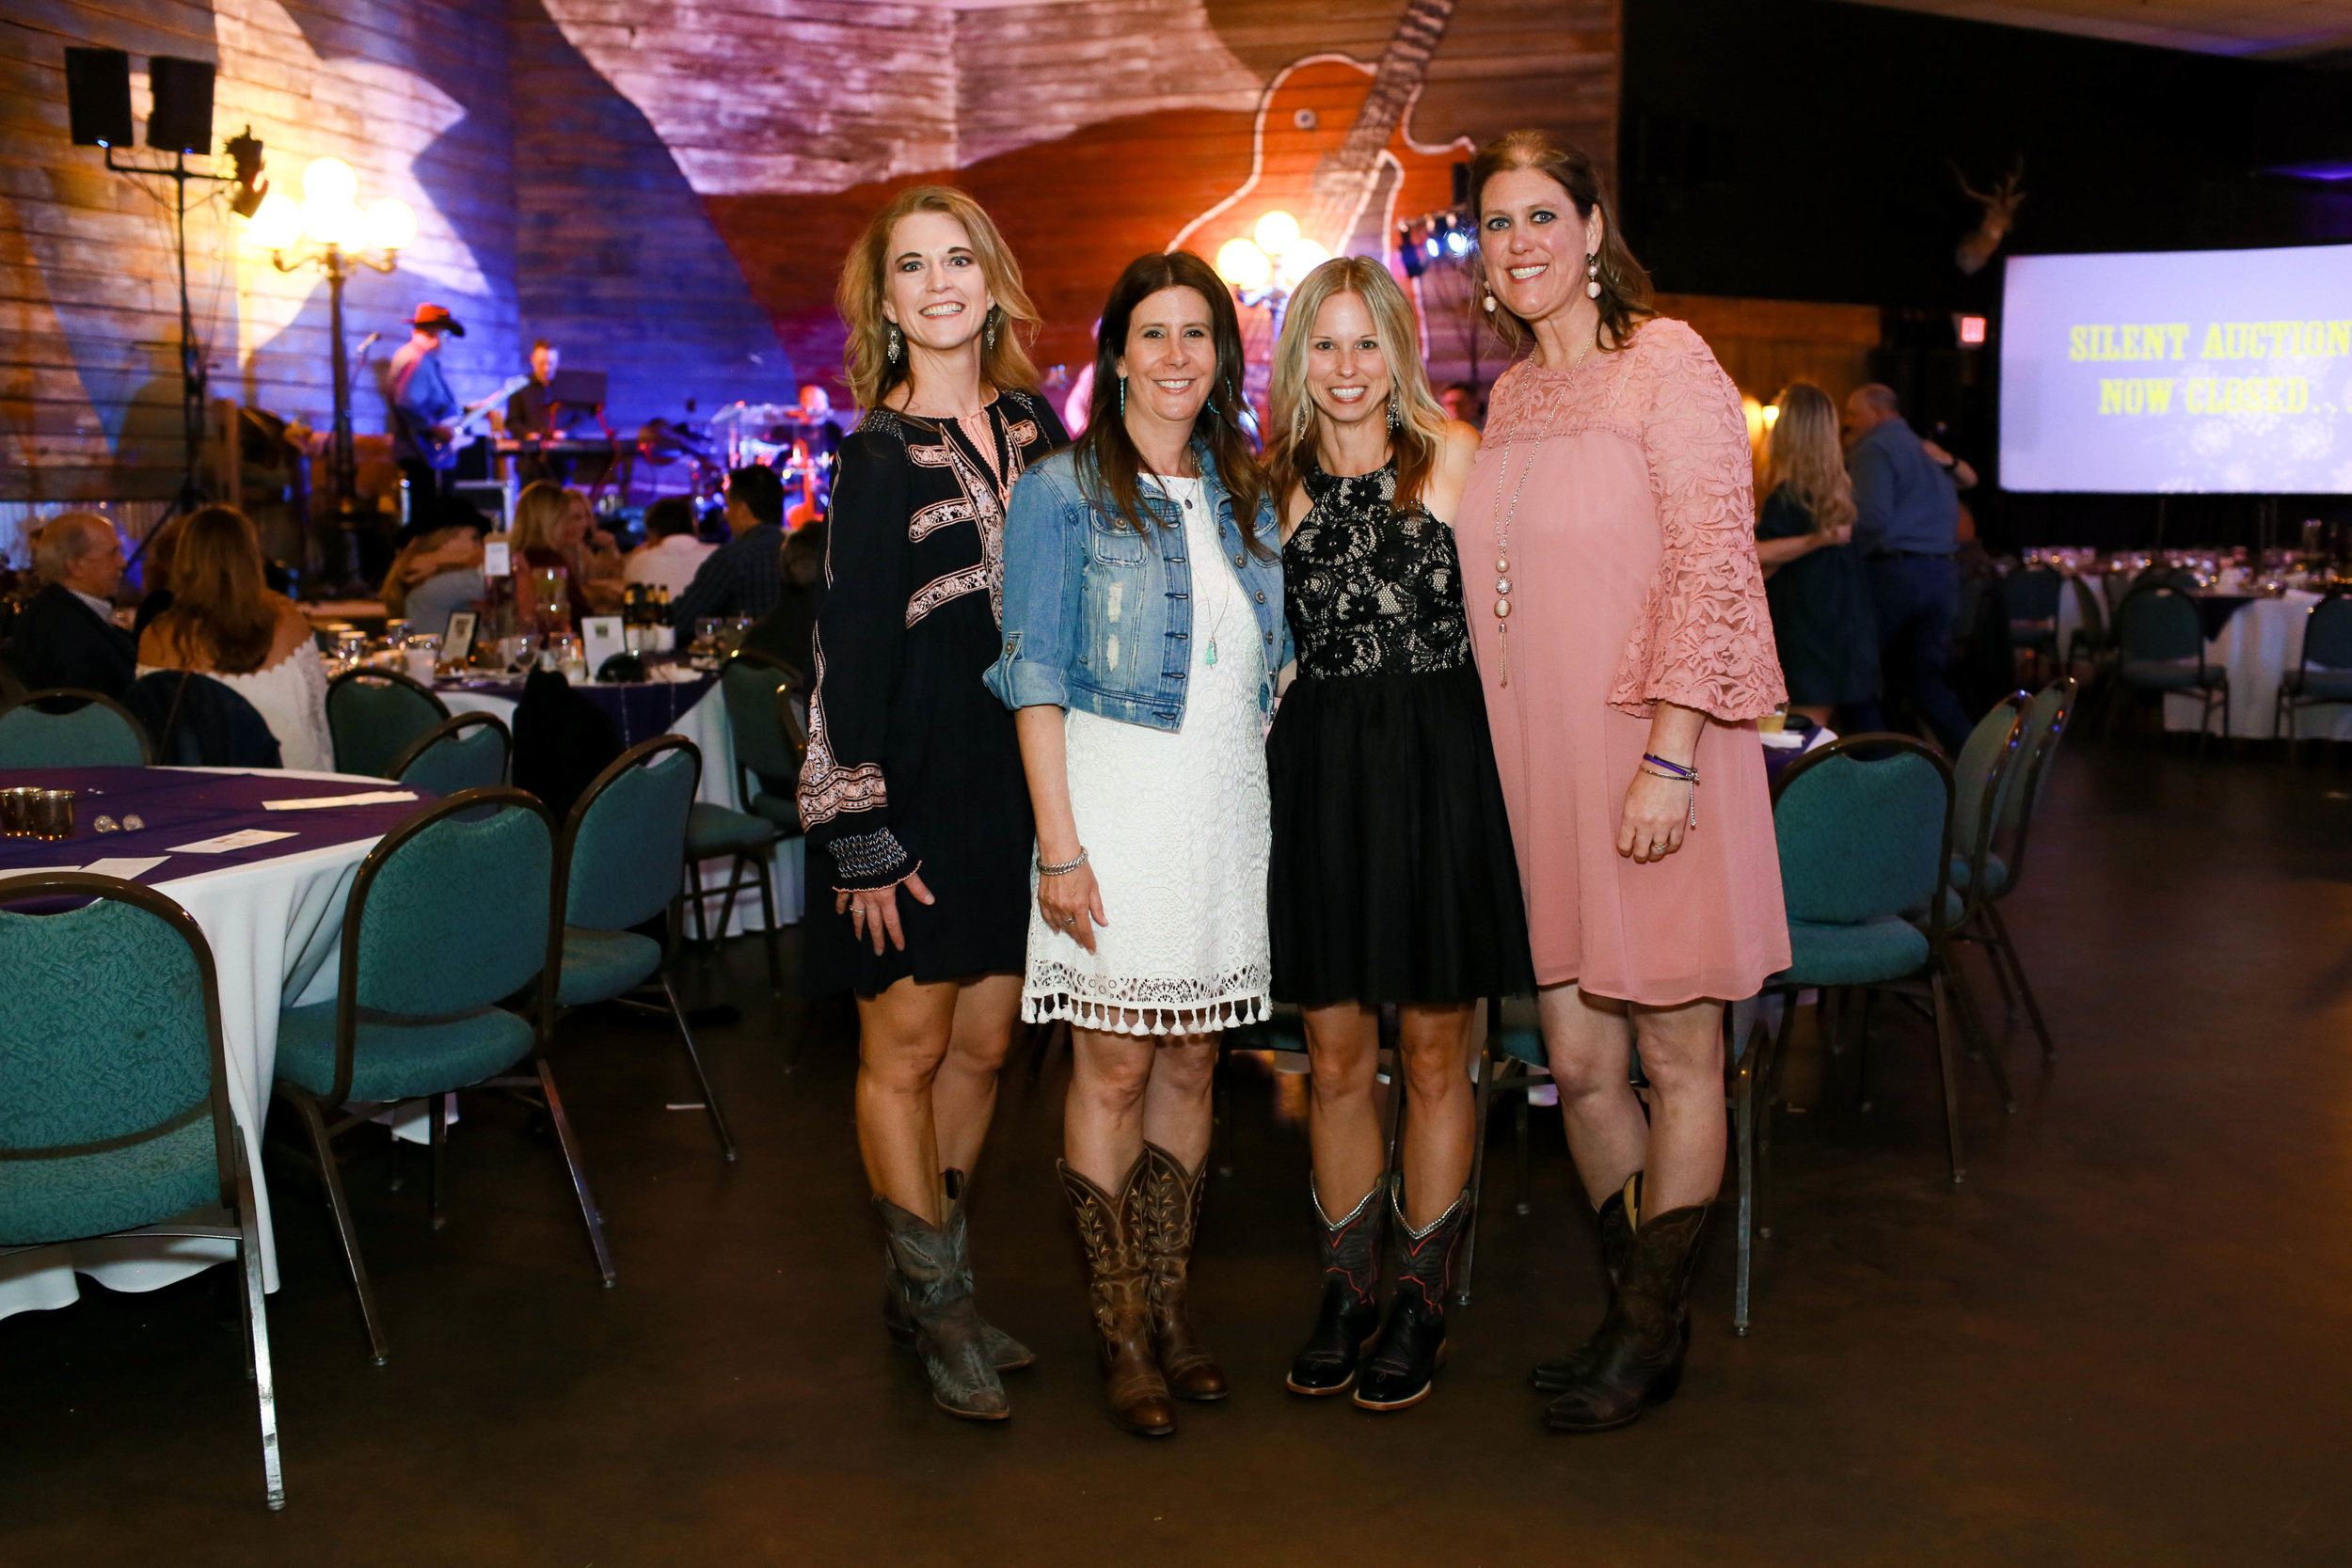 Ally's Wish co-founders Holly, Melissa, Missy, and Heather.